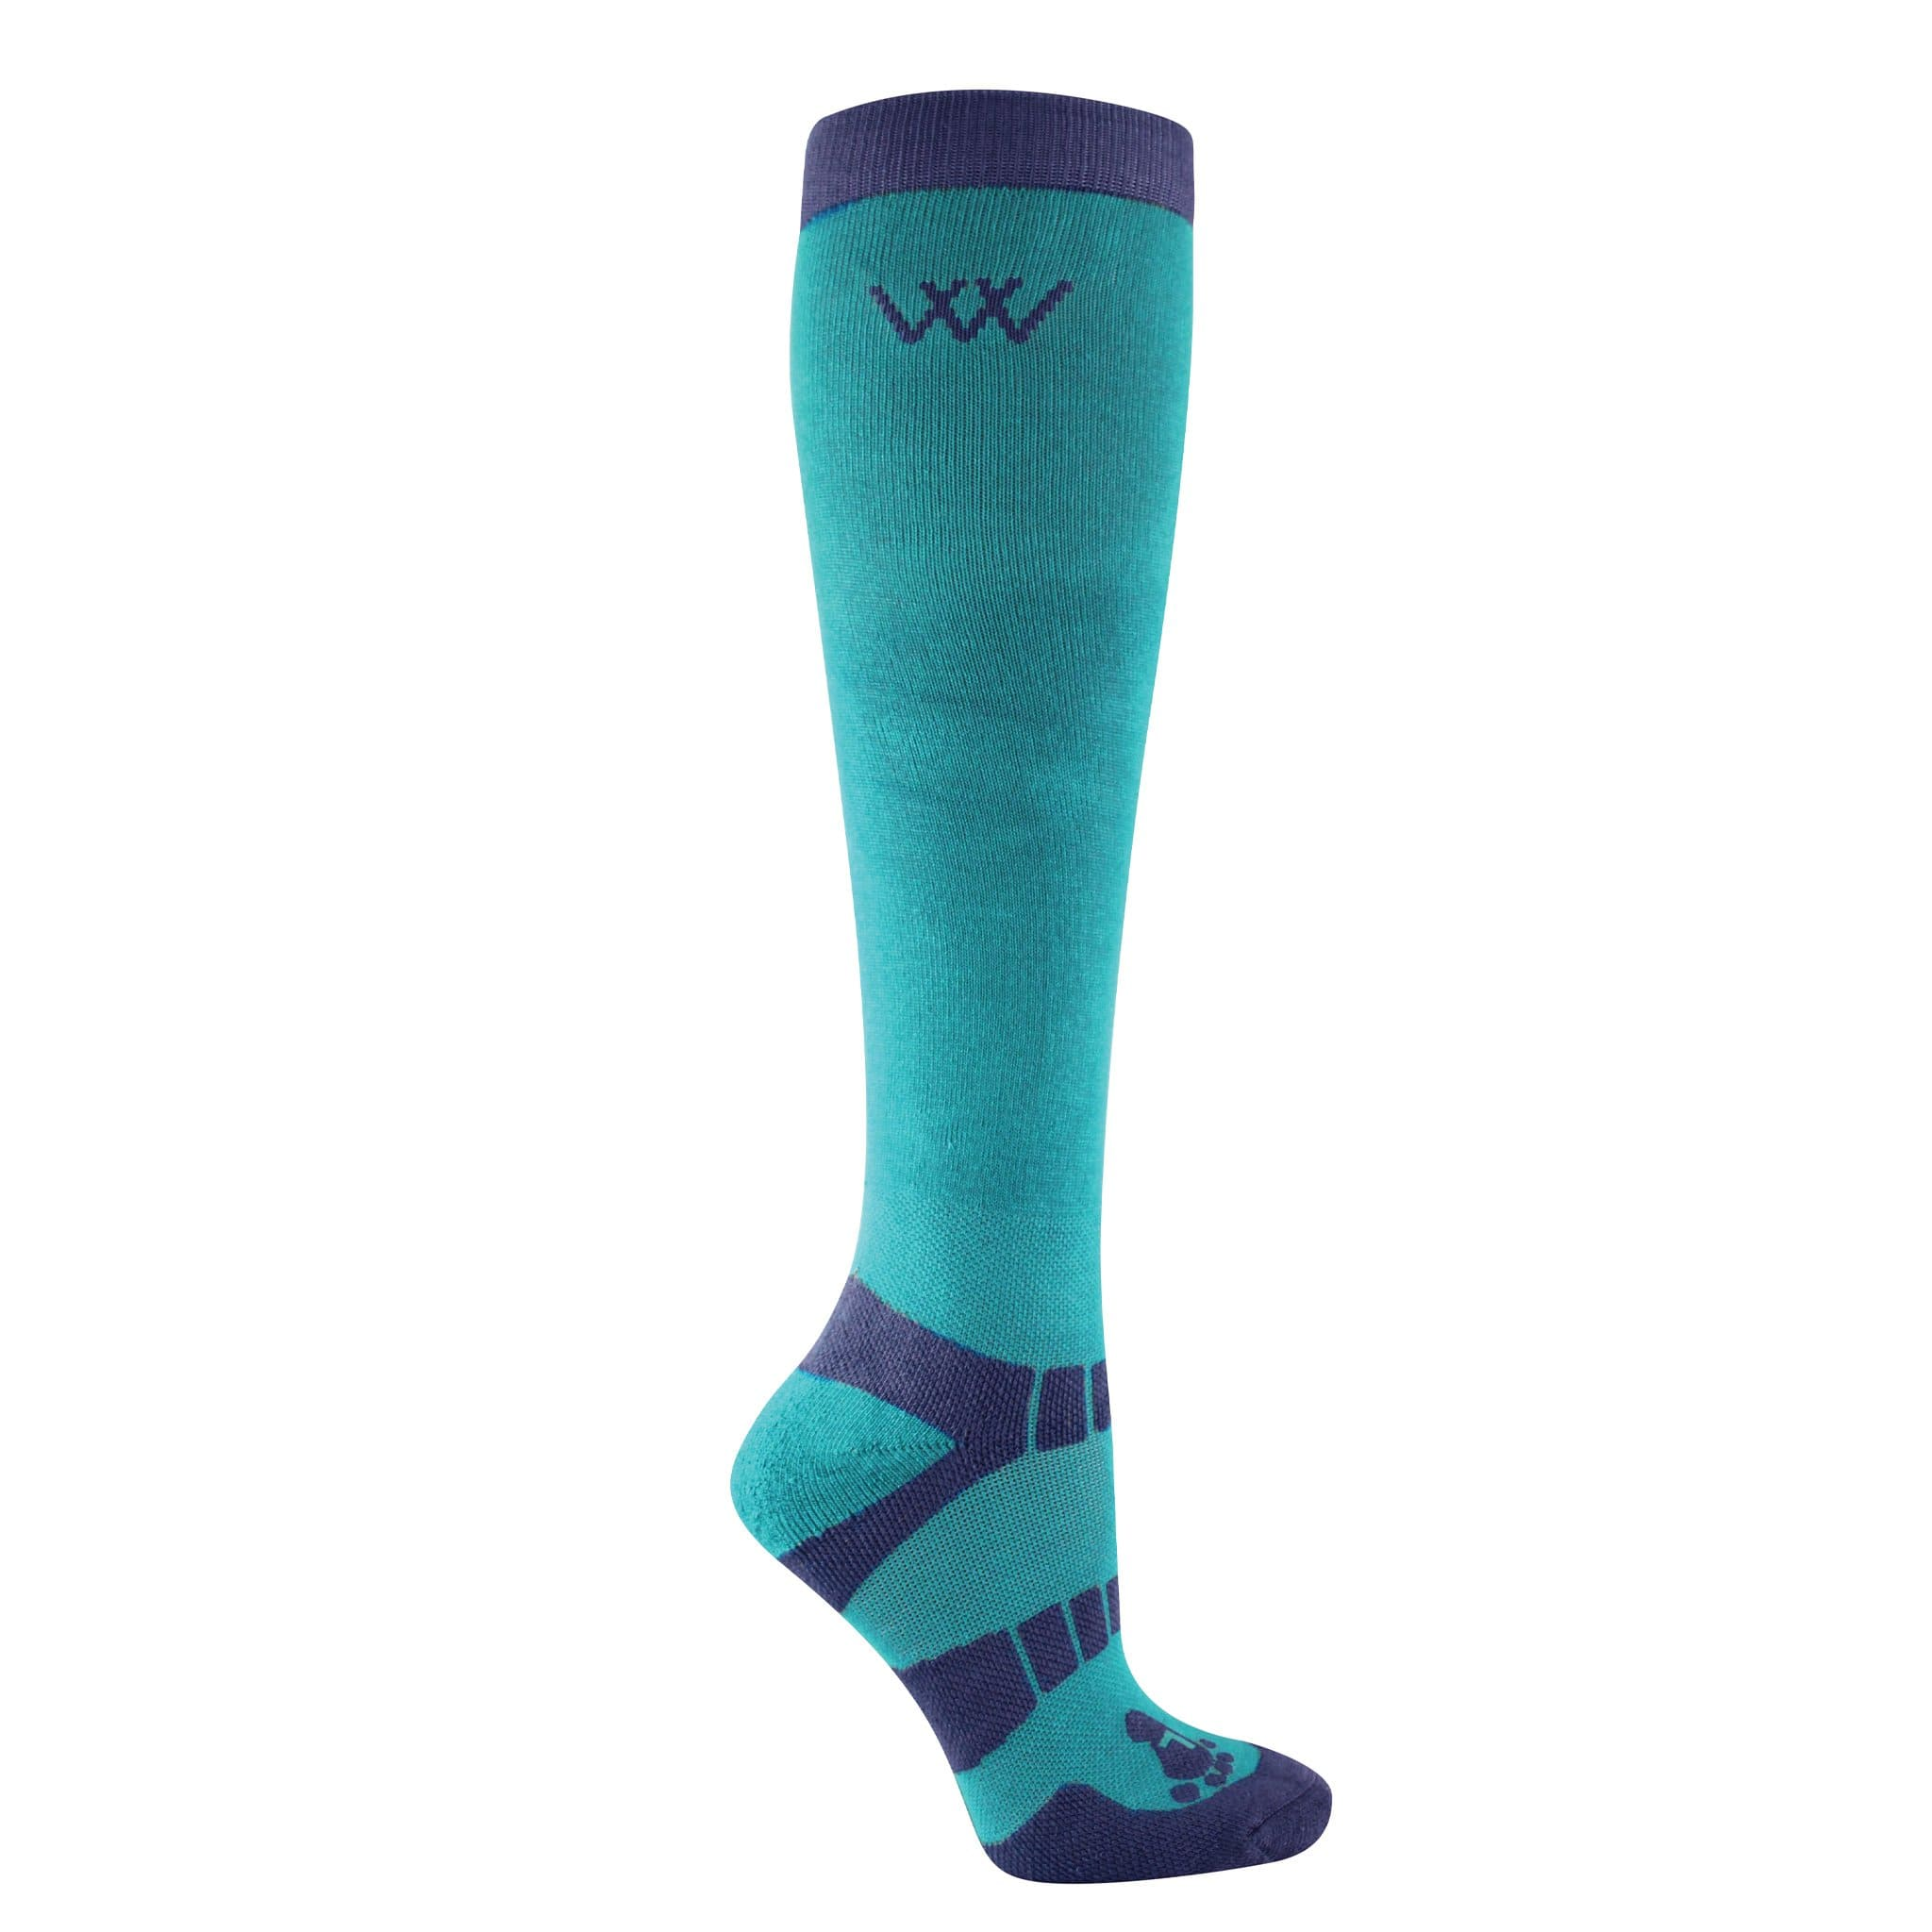 Woof Wear Waffle Knit Bamboo Long Riding Socks 2 Pack Ocean and Navy WW0017